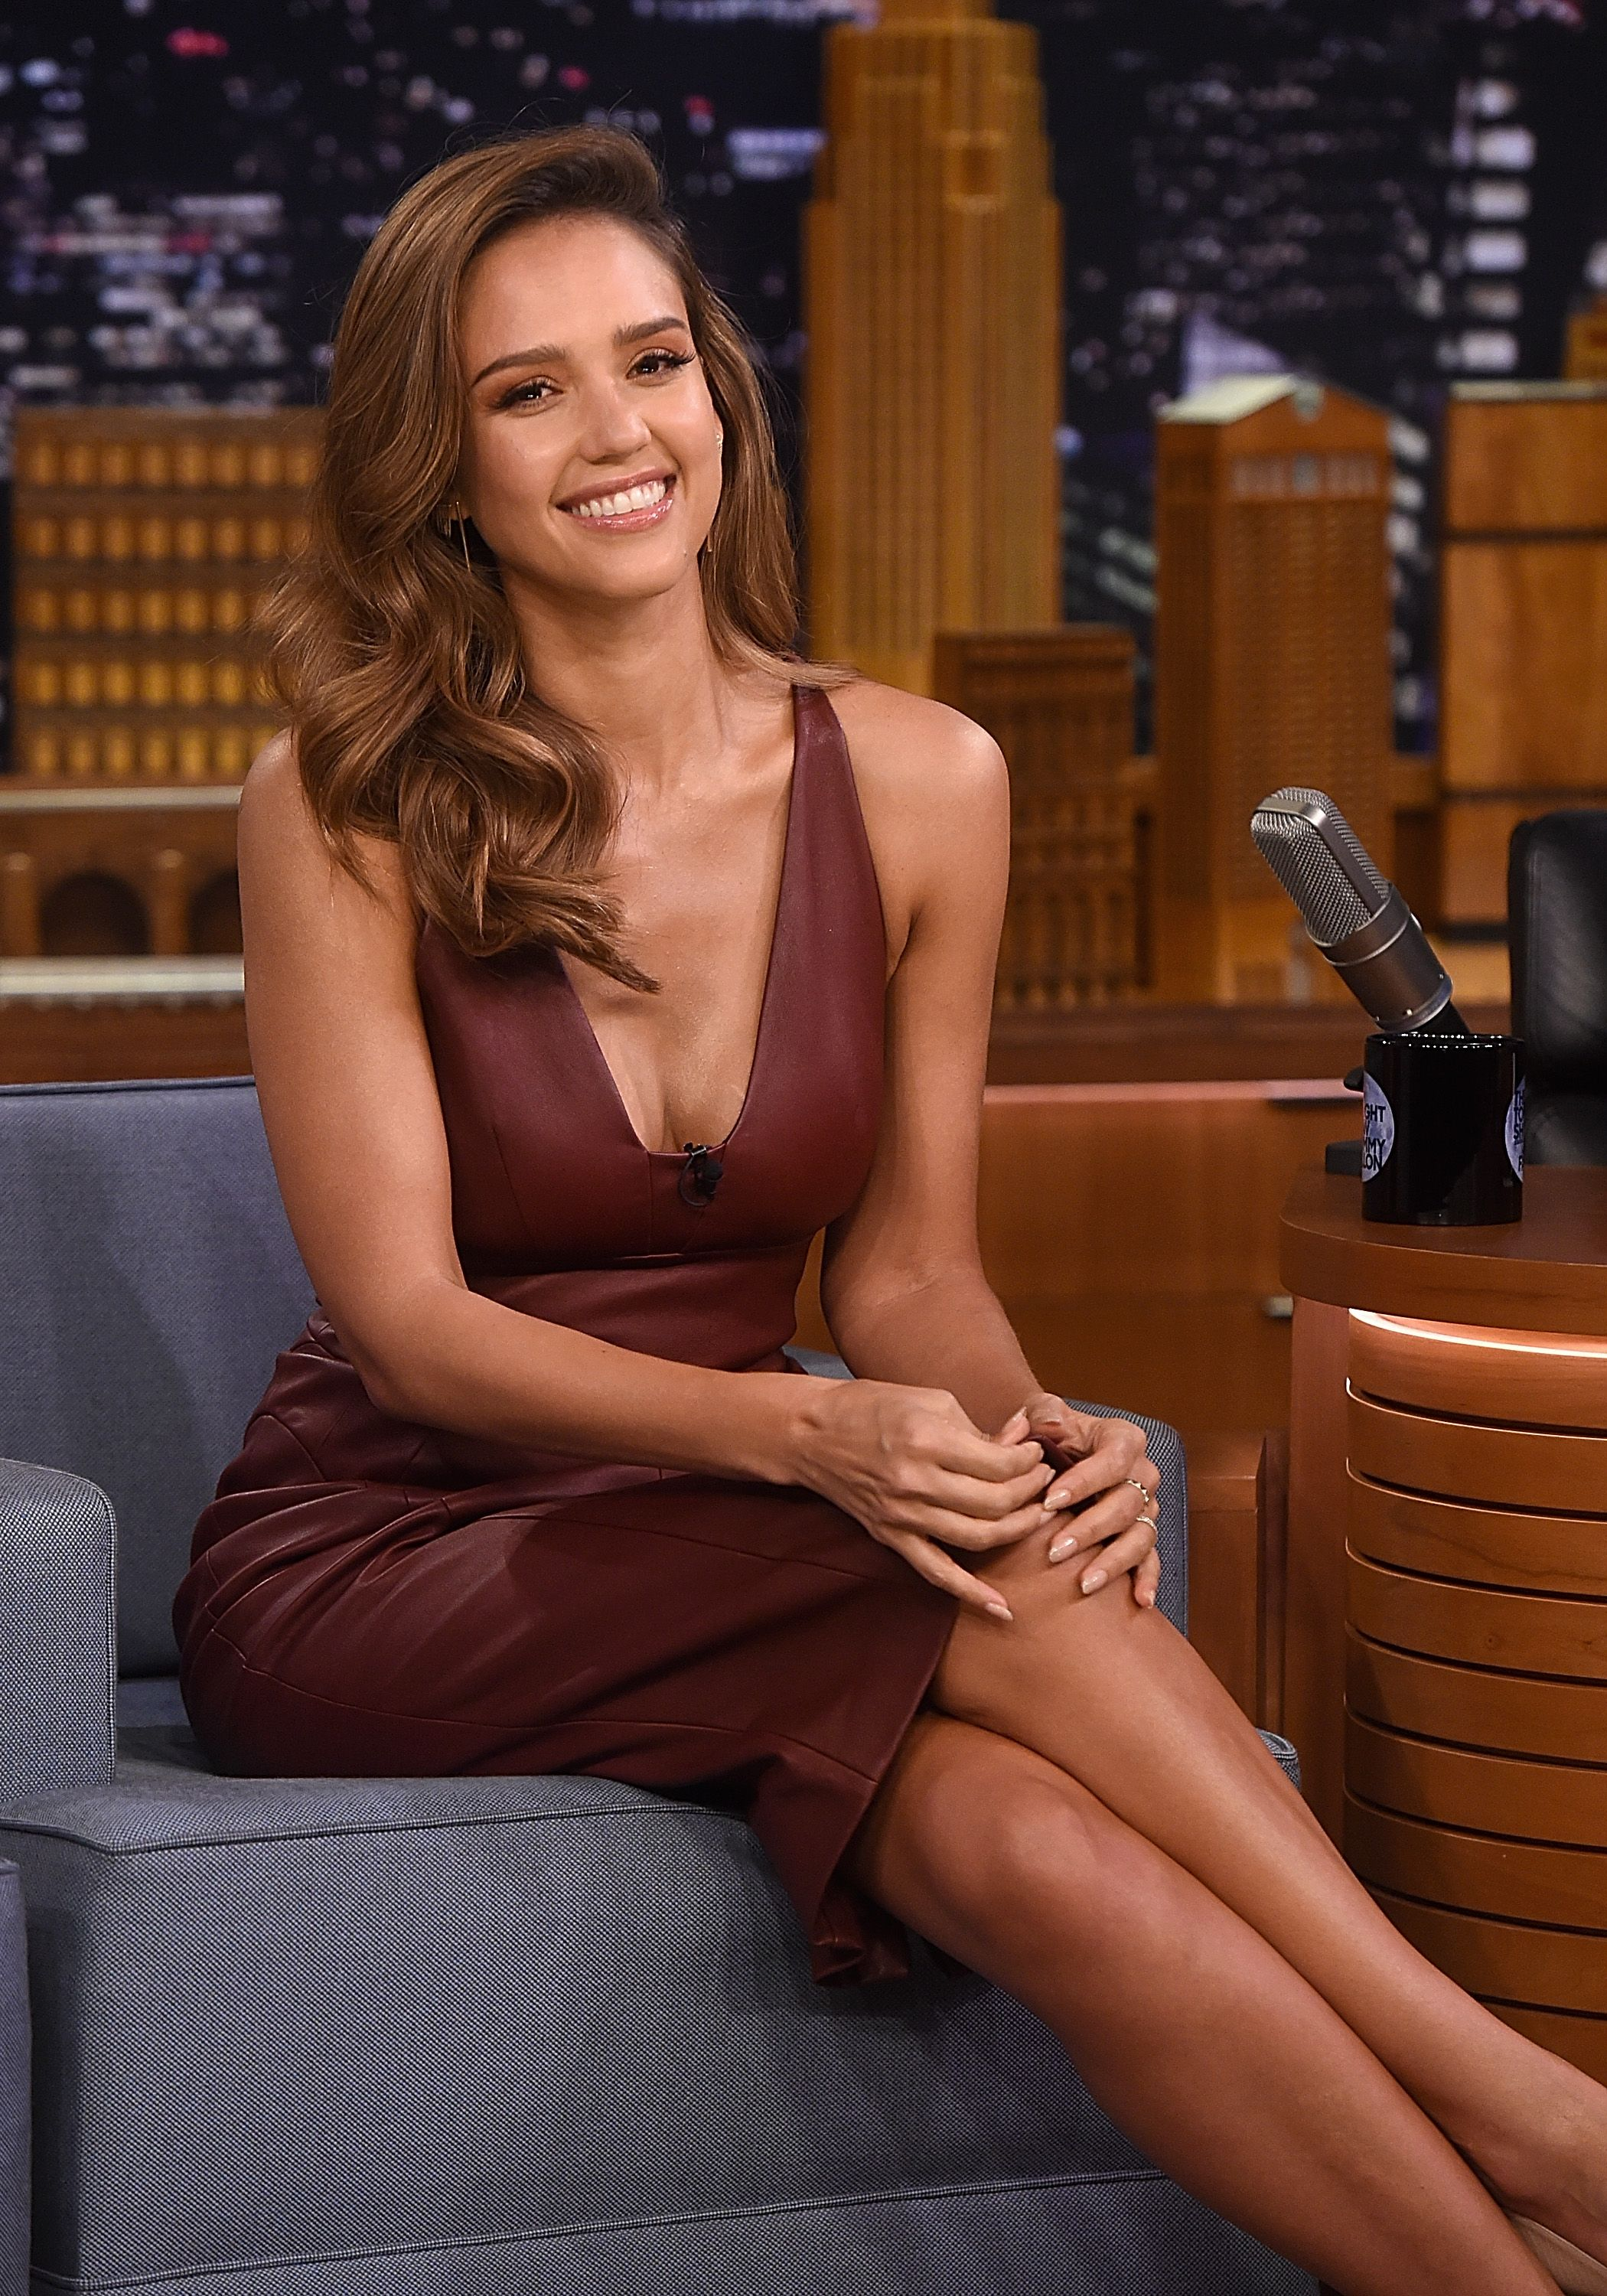 30 health tips Jessica Alba lives by for a toned figure and glowing skin